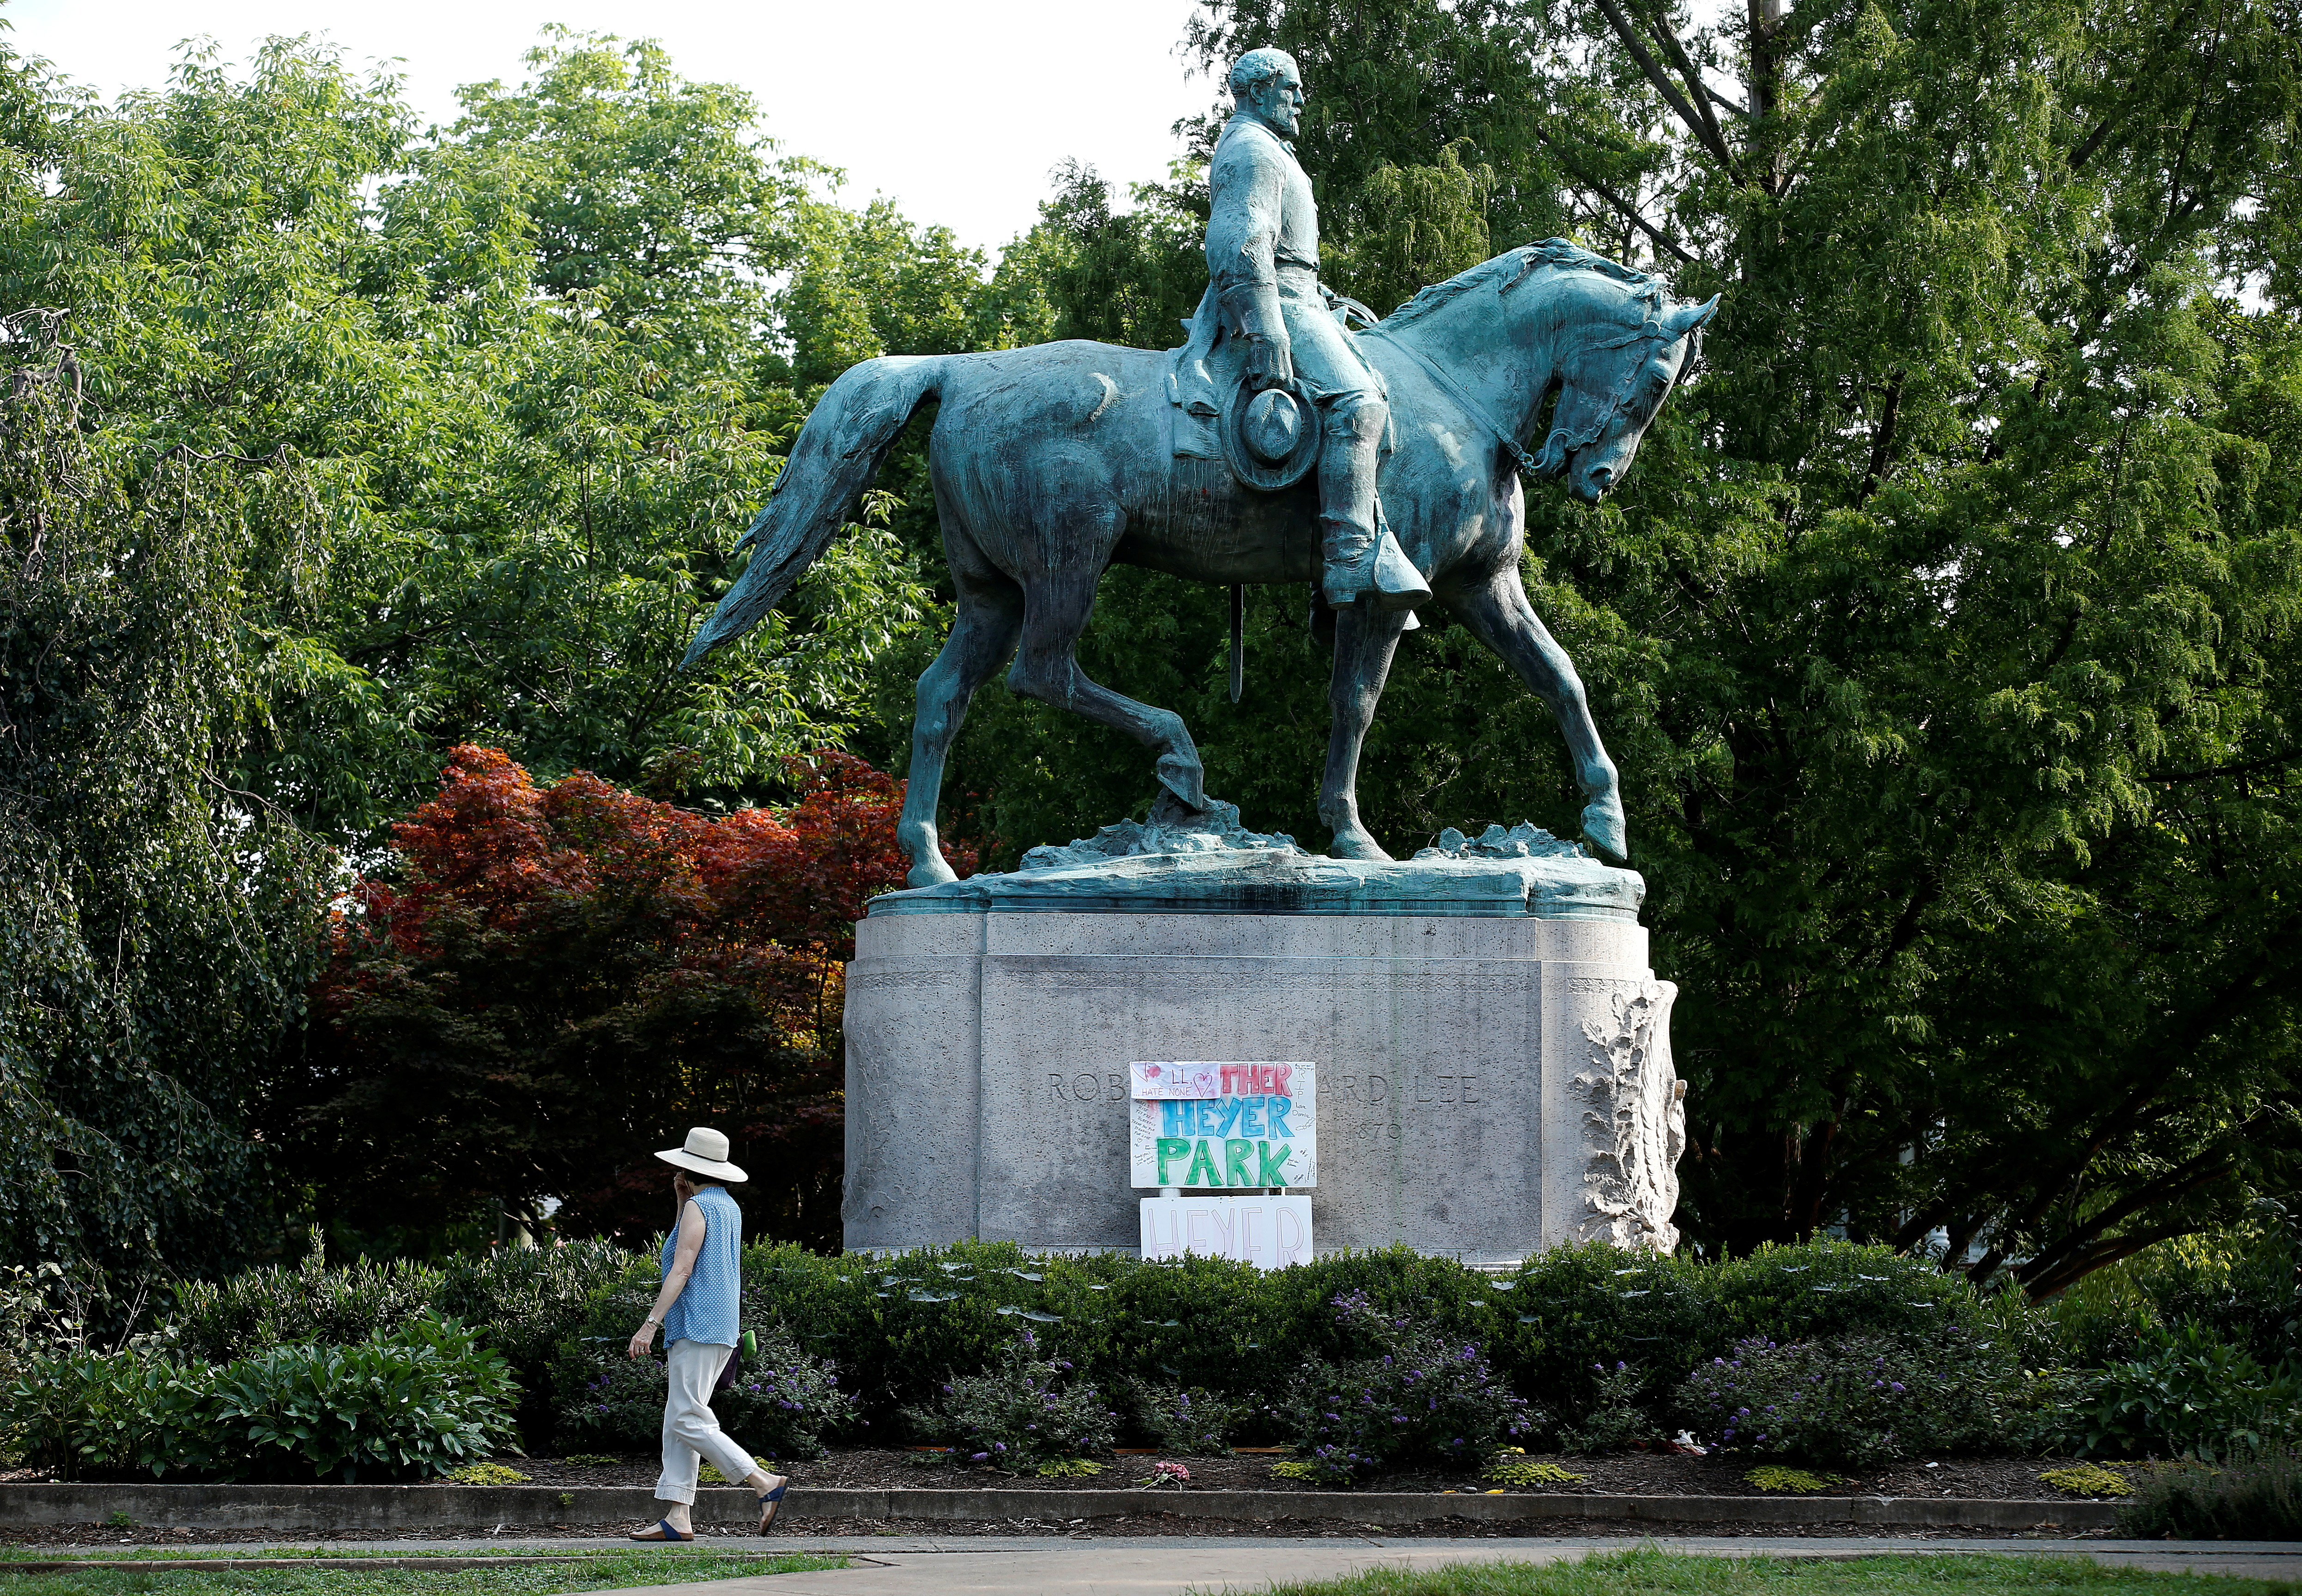 Confederate monuments testify to the Union's unfinished victory